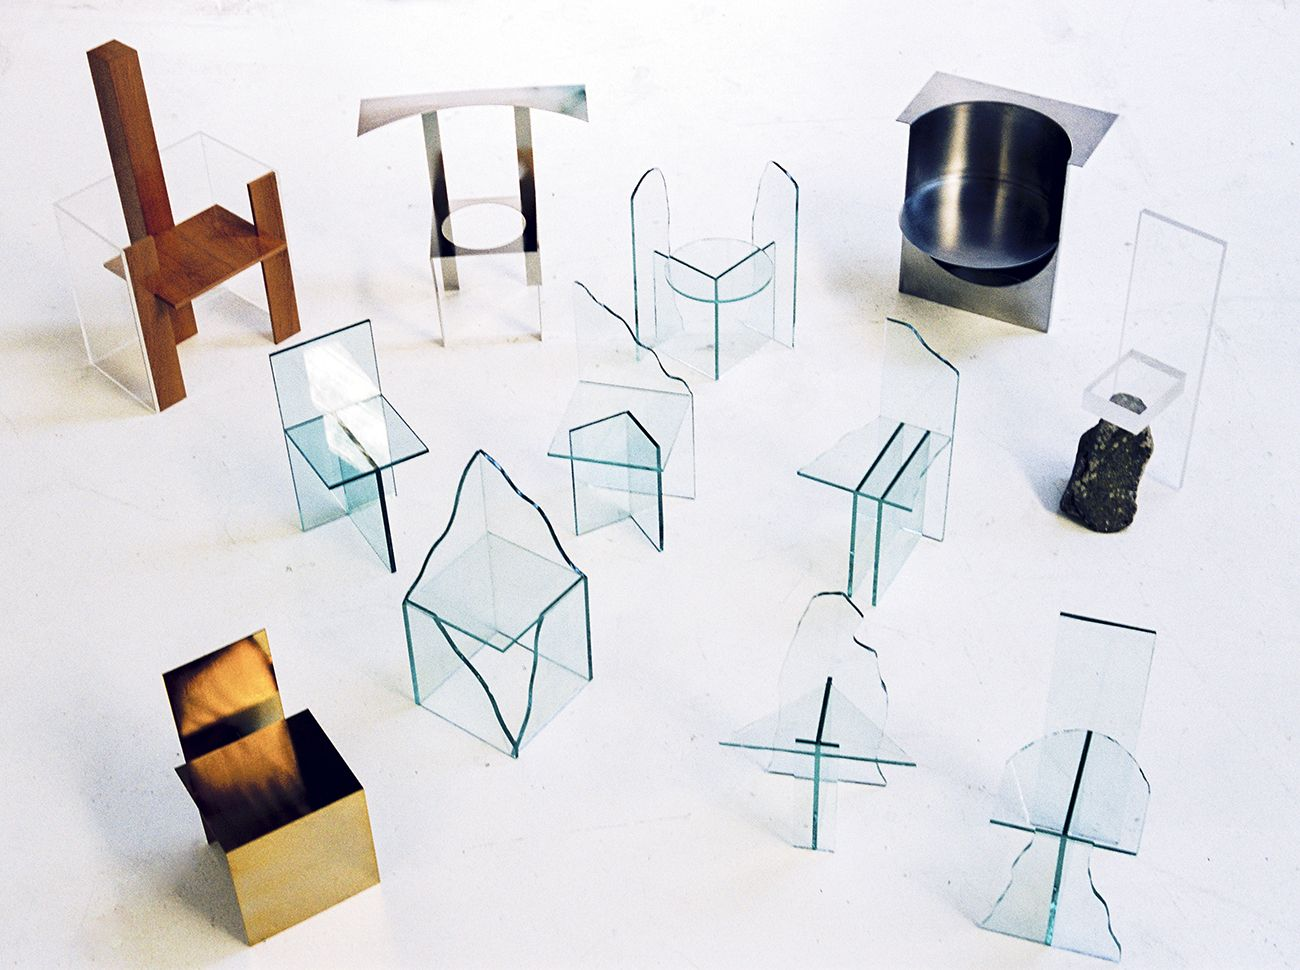 Guillermo Santomá's new furniture includes aseries of organic, landscape-like glass chairs as well as a more geometric, Kuramata-esque collection of five.